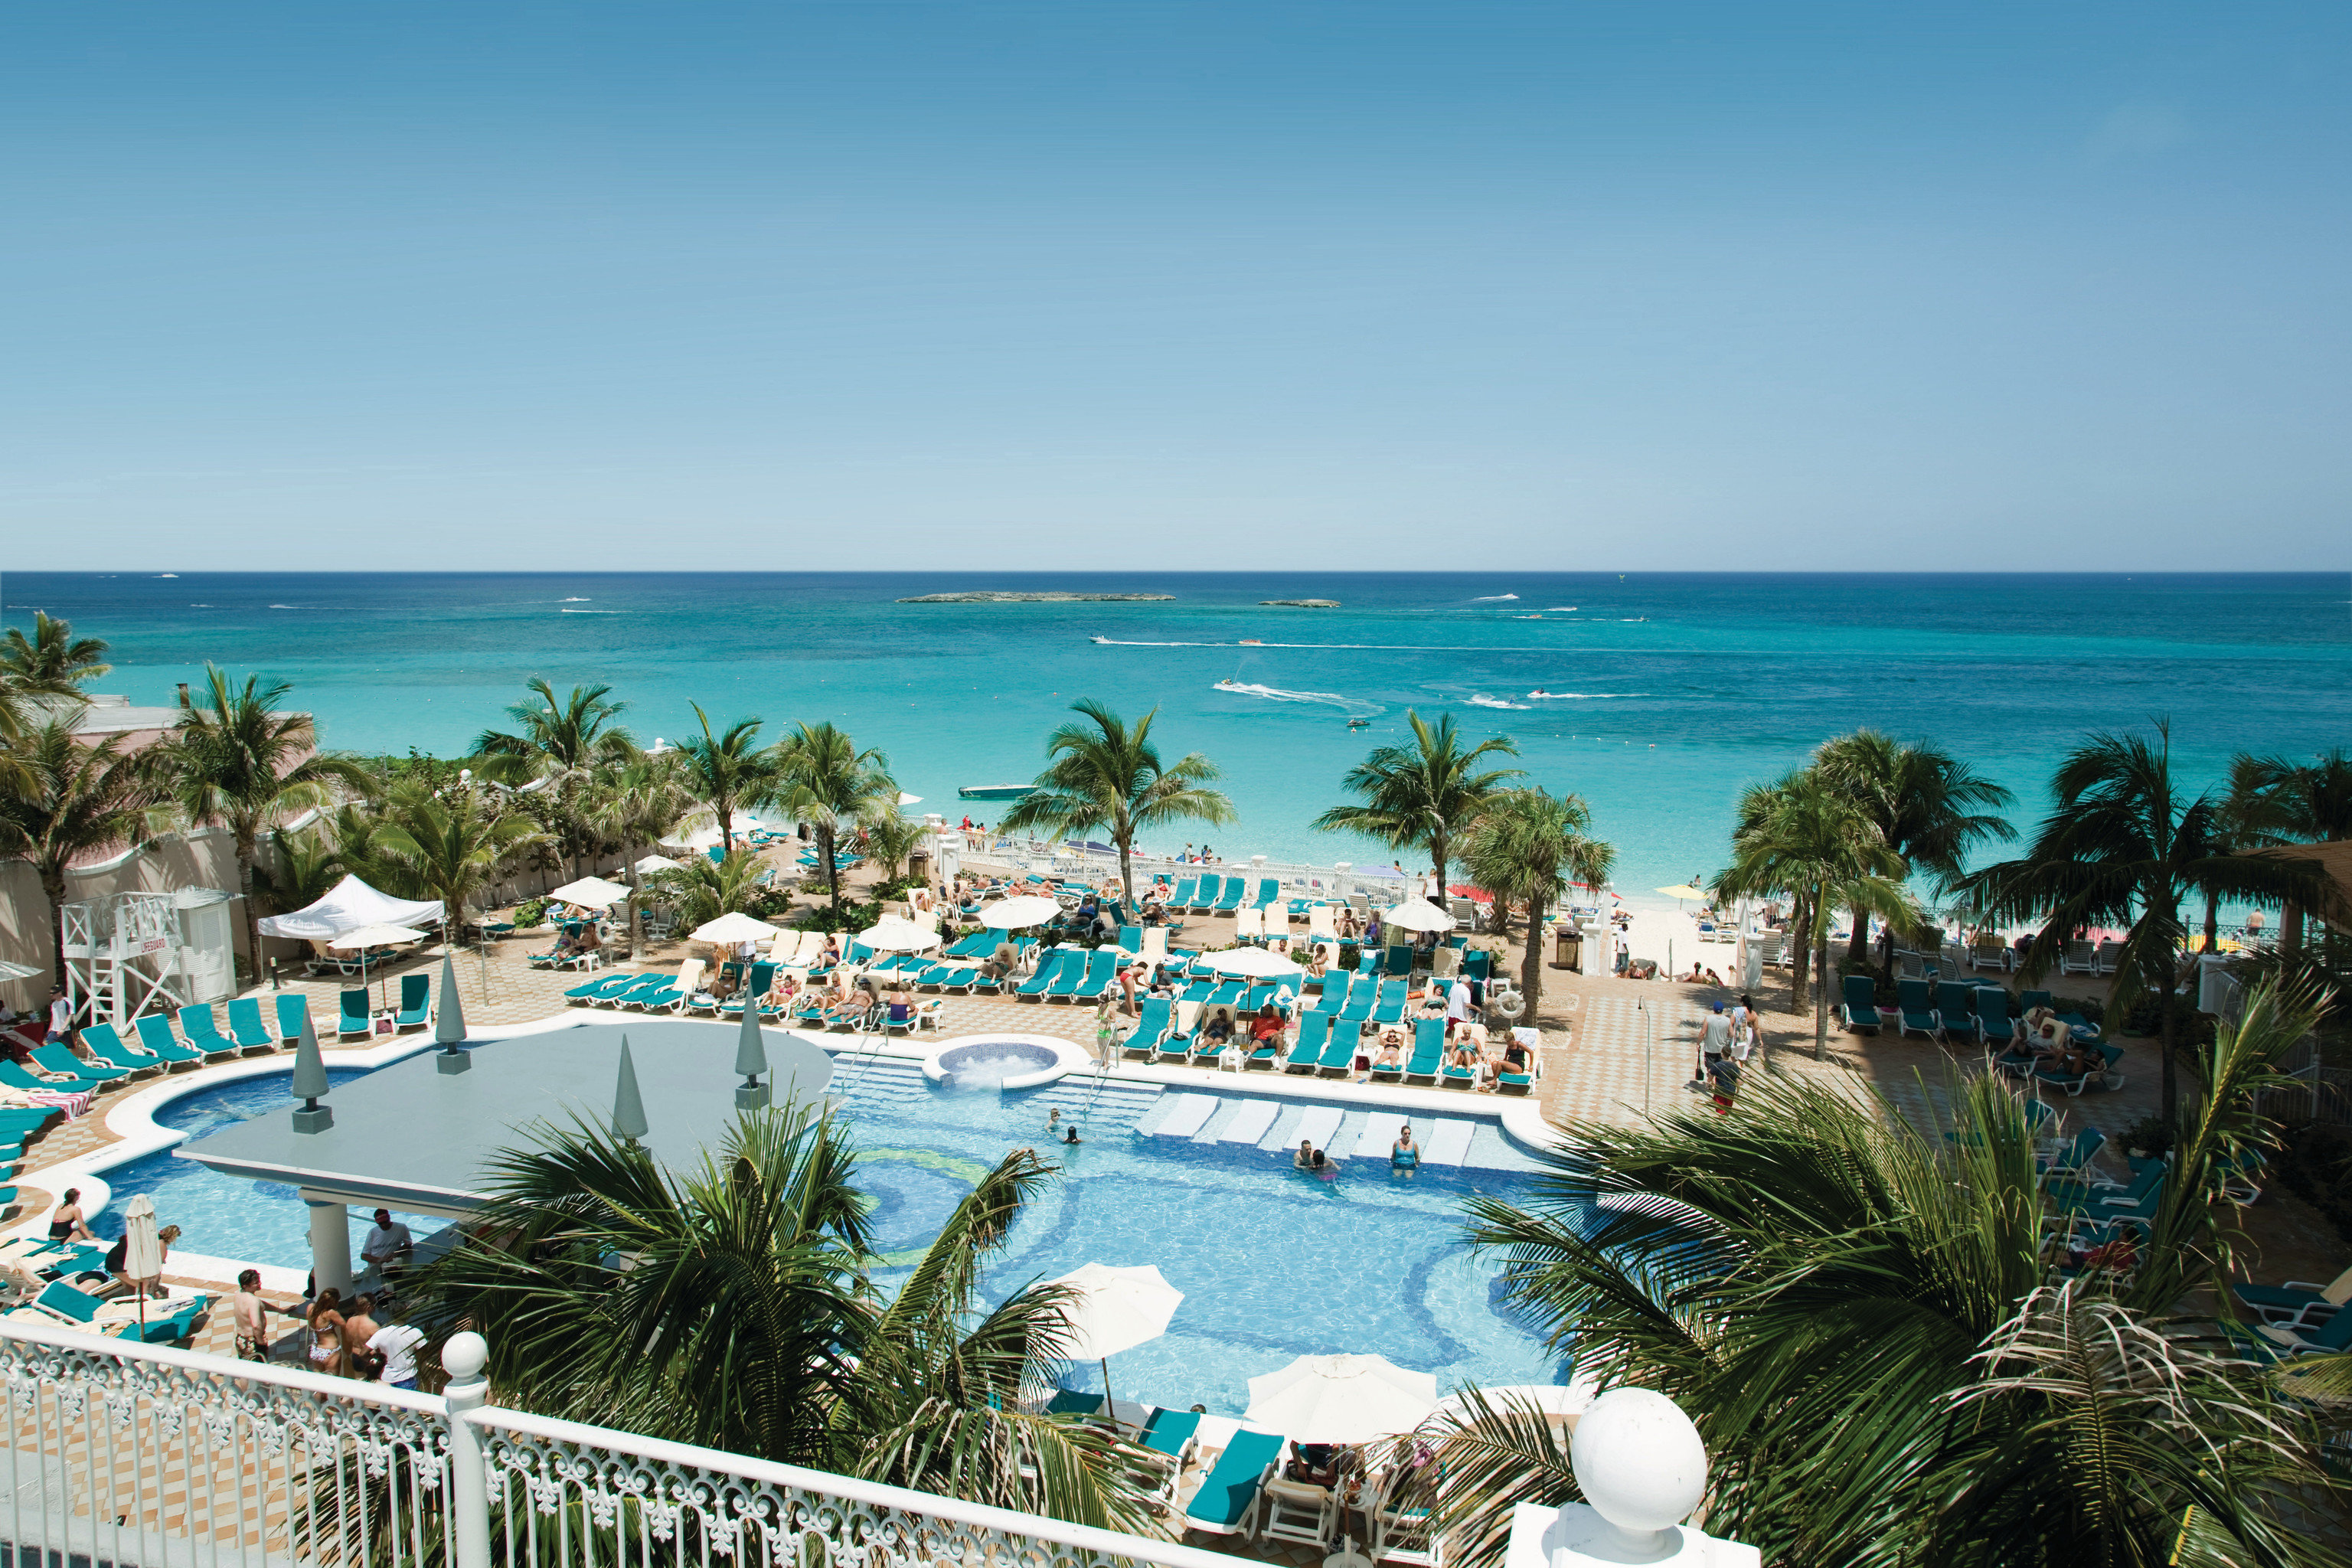 Hotels sky water outdoor Beach leisure Sea vacation Ocean caribbean Resort Nature Coast bay cape estate swimming pool tropics Lagoon shore overlooking Deck day